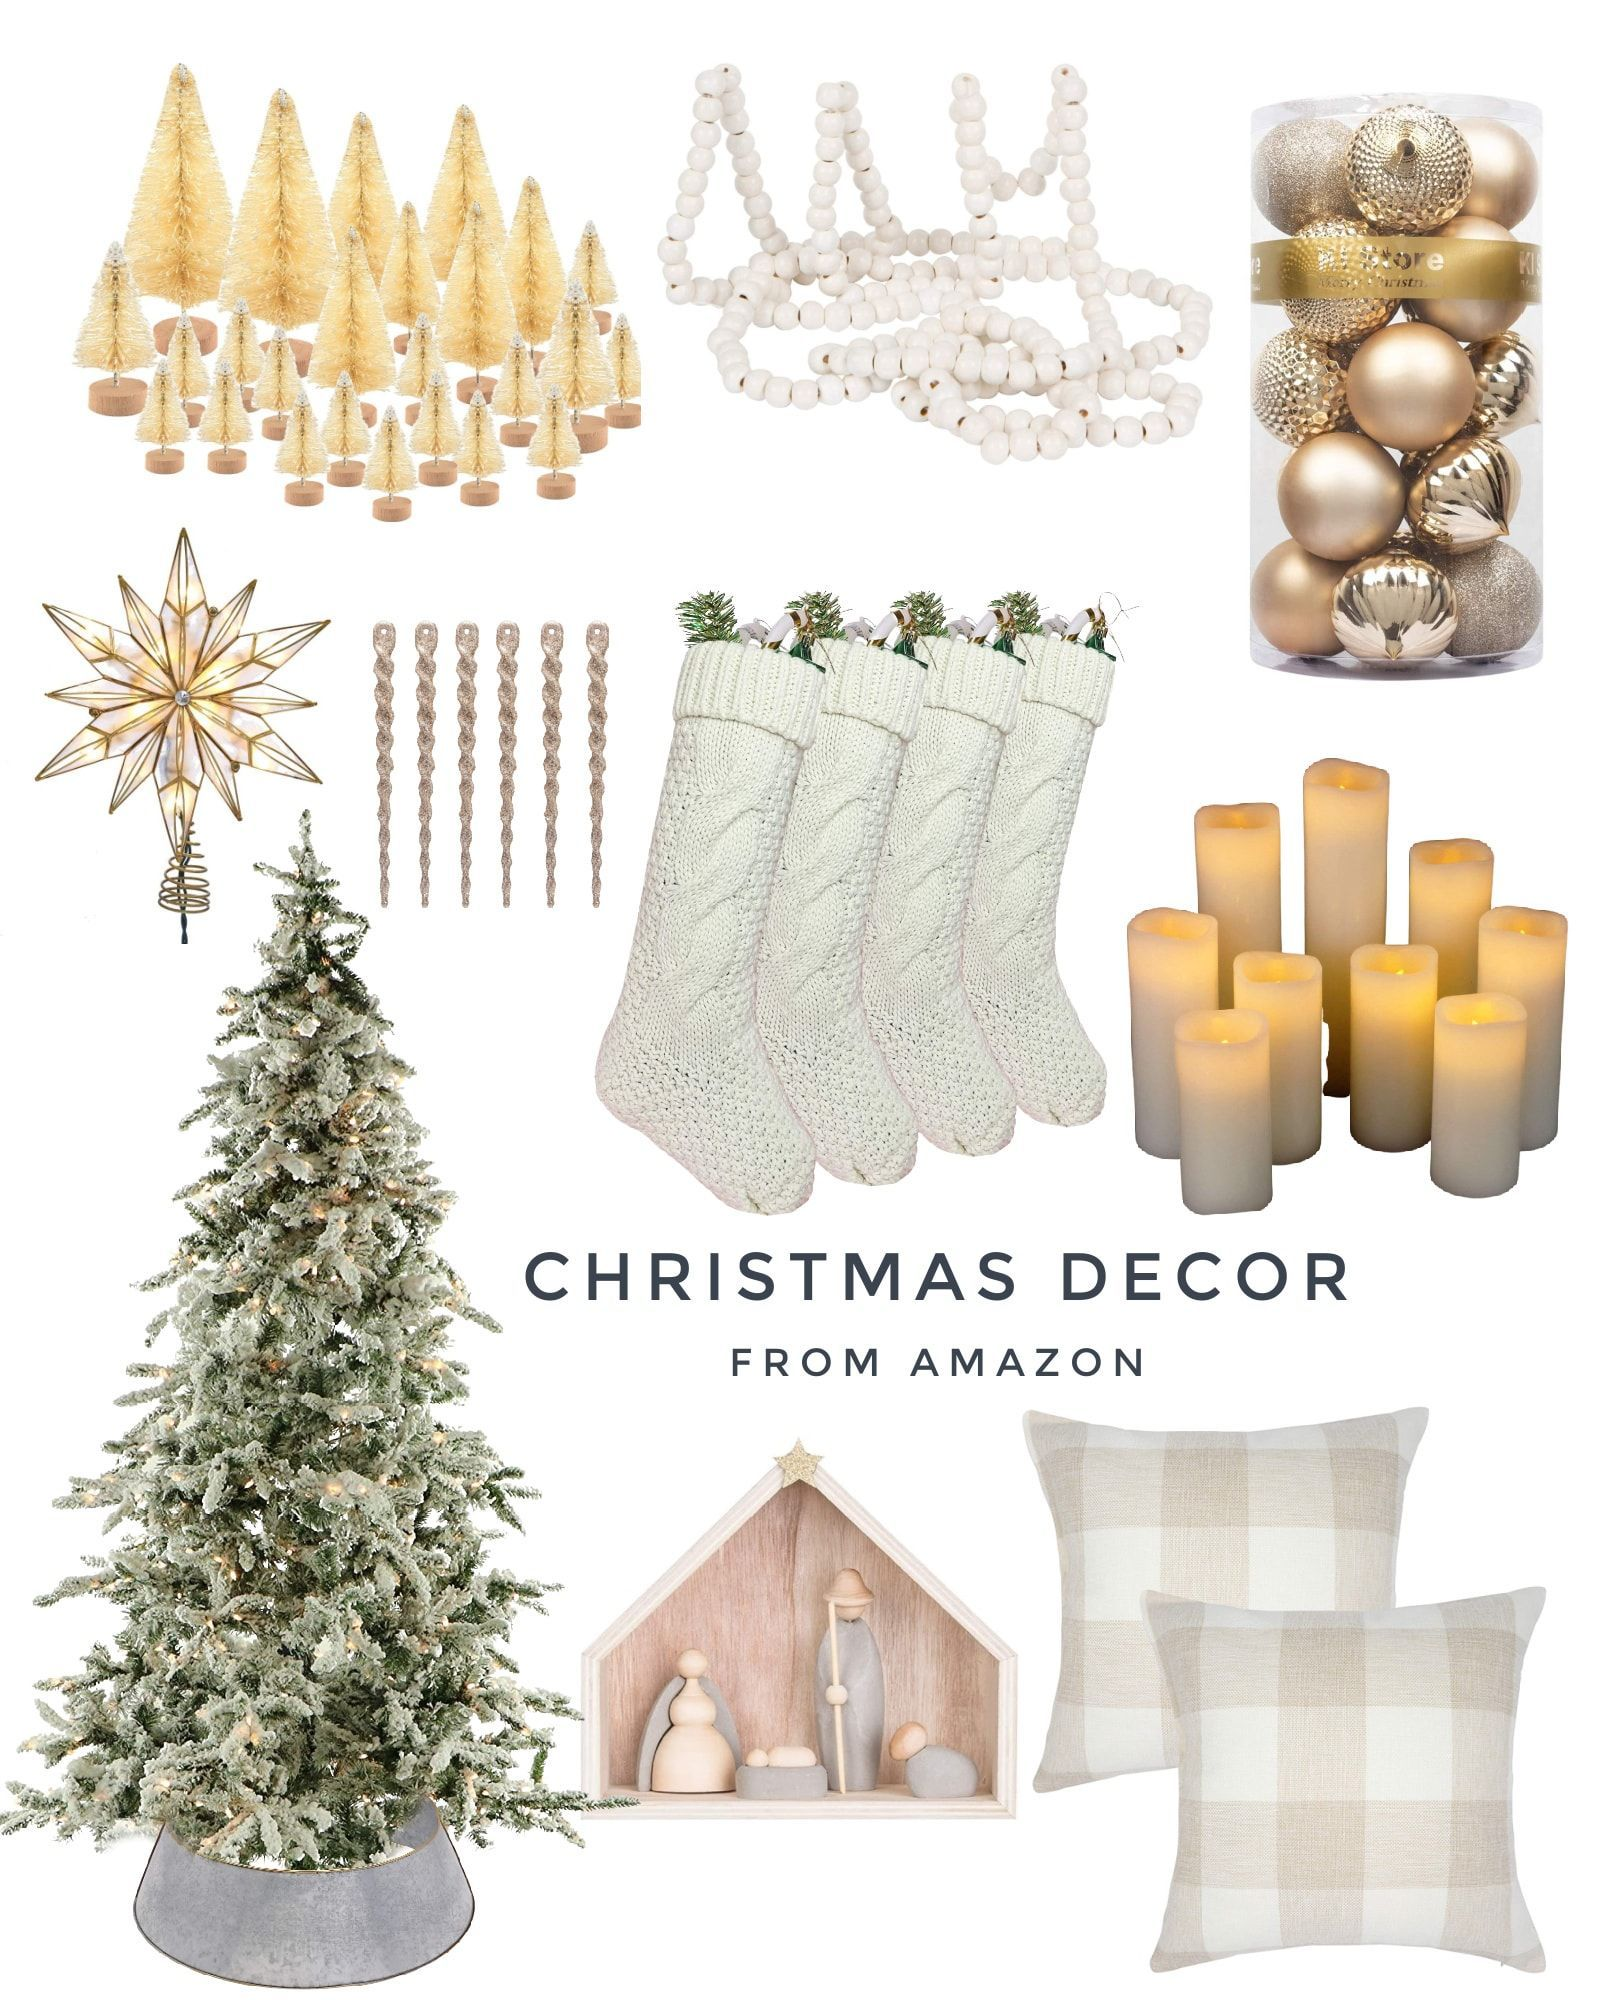 Amazon Christmas Decor In 2020 Amazon Christmas Decorations Neutral Christmas Decor Christmas Decorations